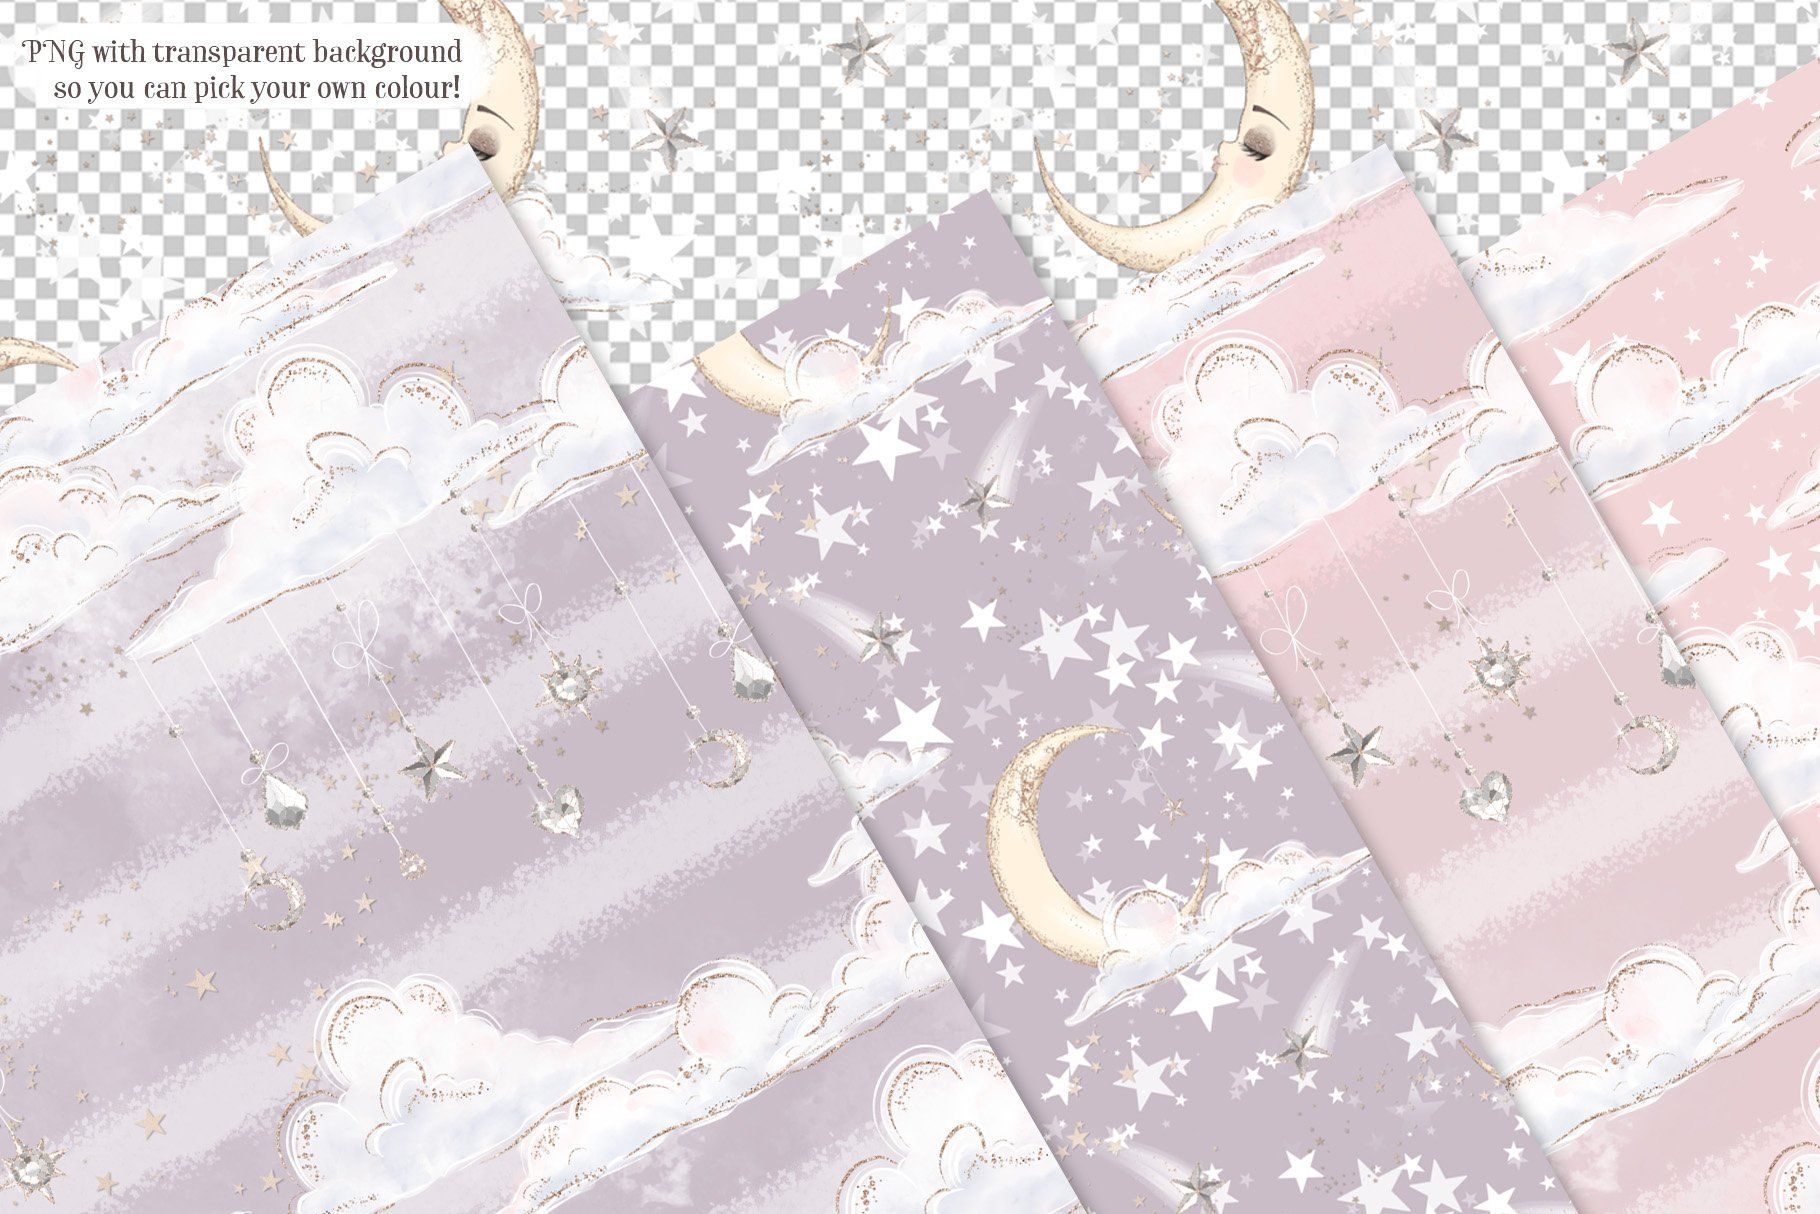 Little Angels Seamless Patterns in 2020 Seamless